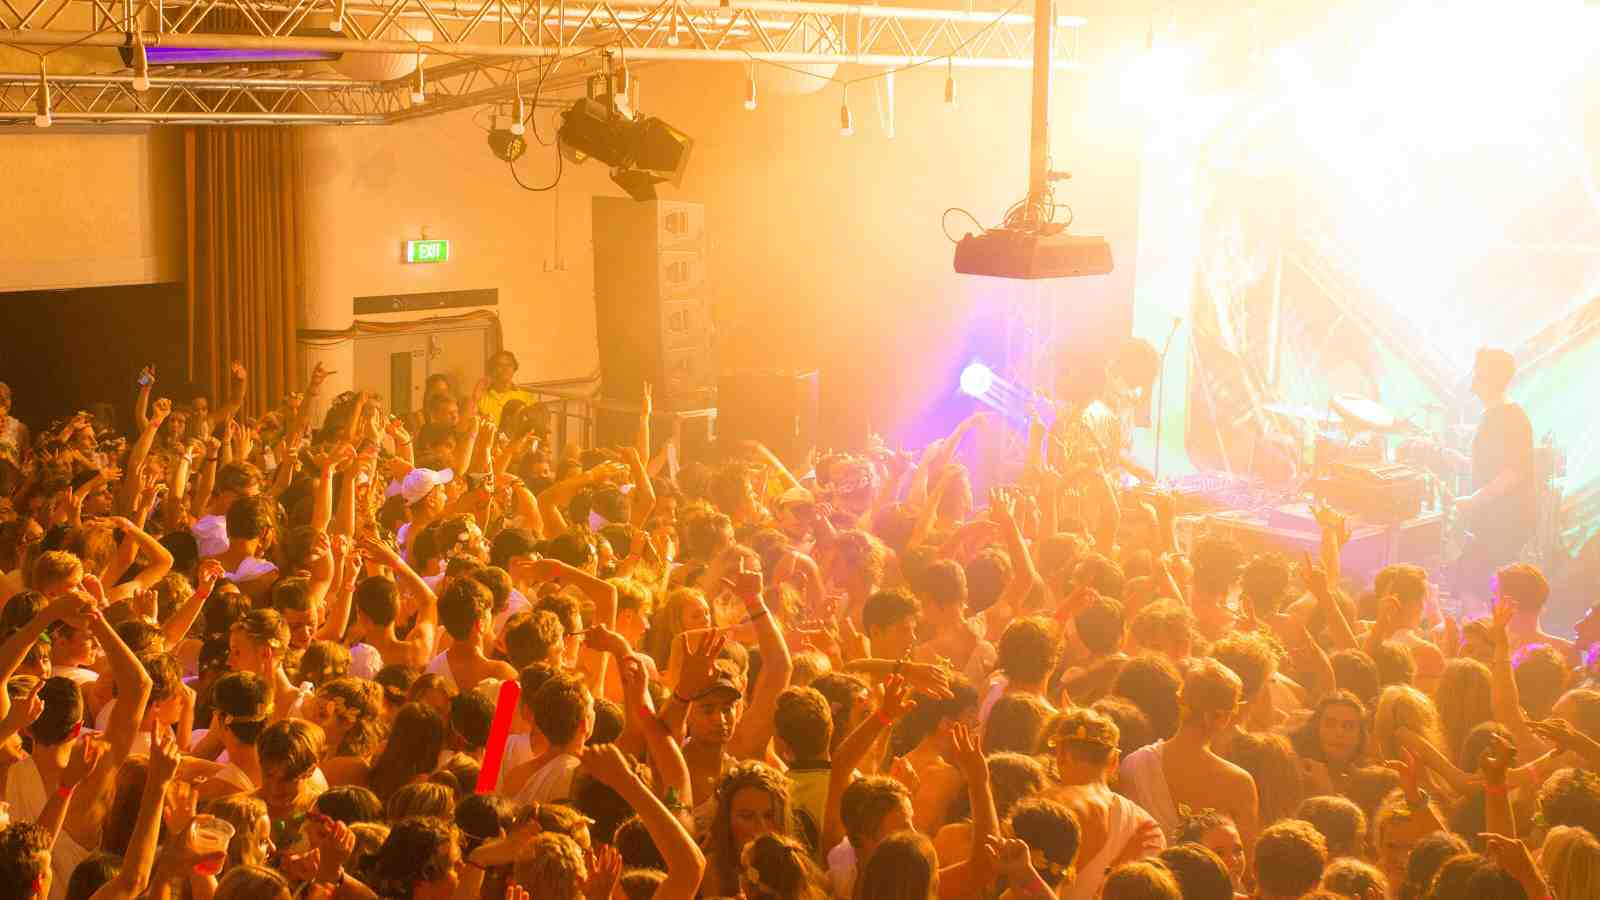 A crowd at a music venue with hands in the air